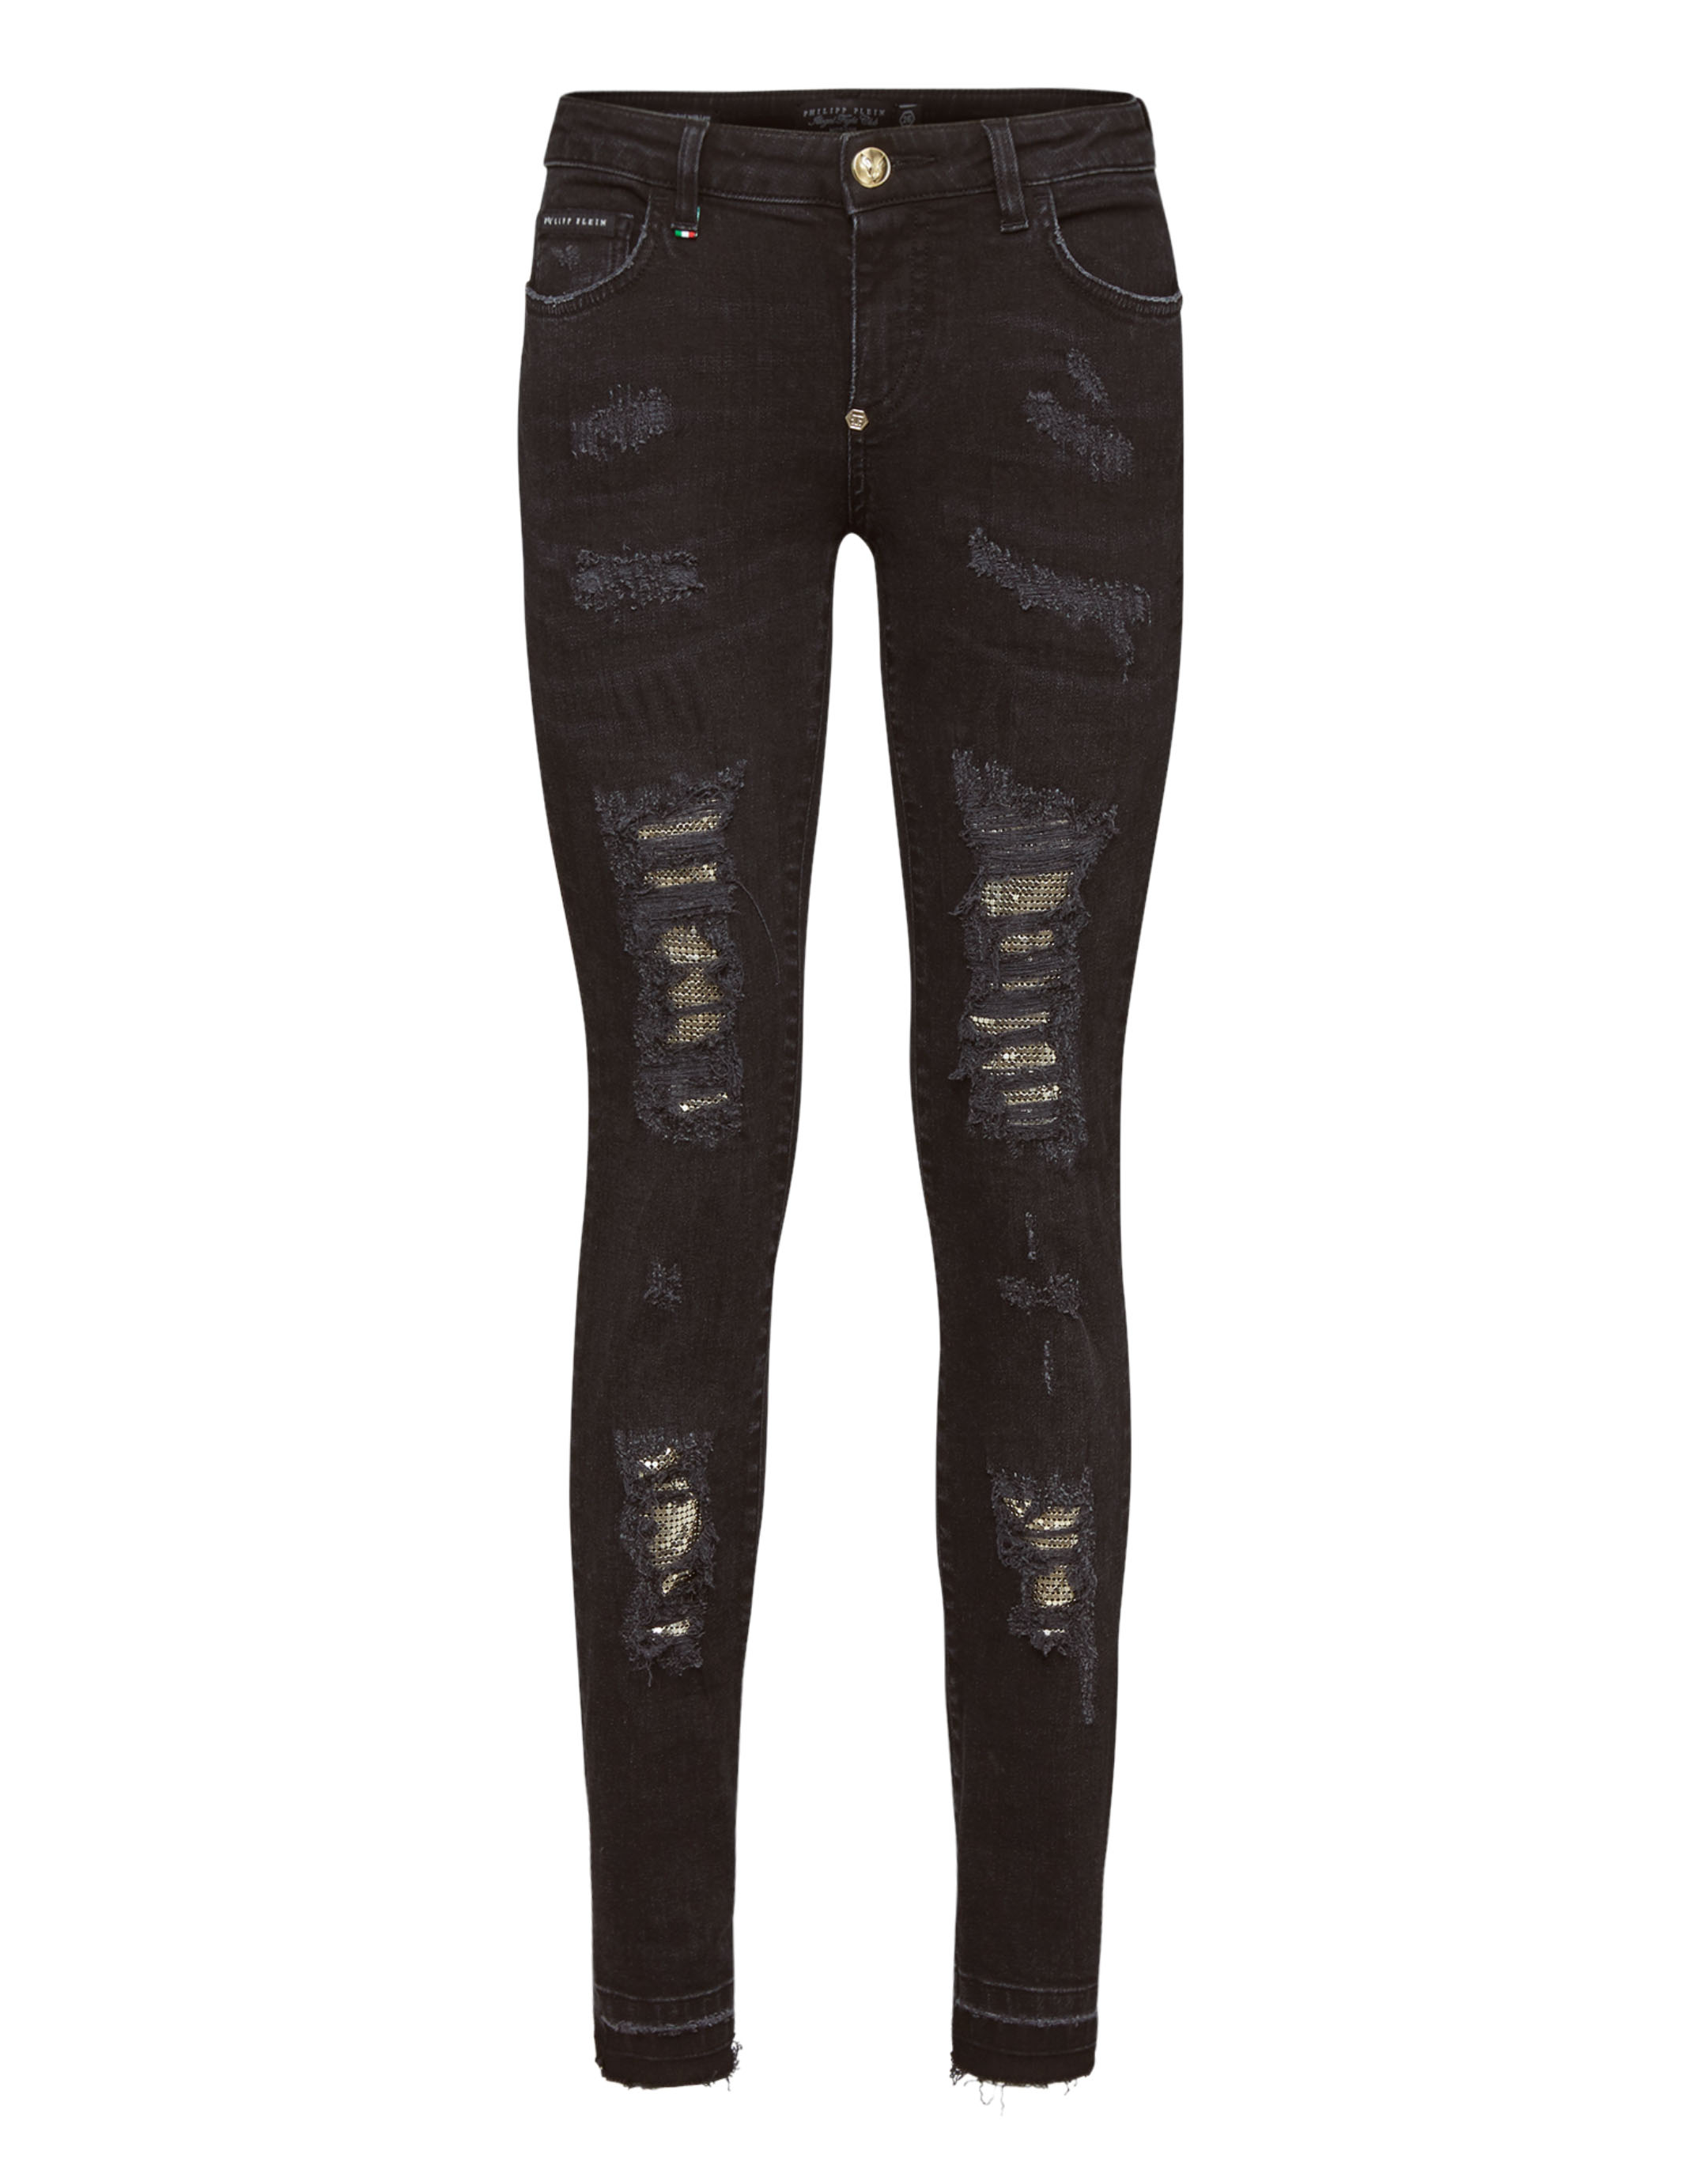 Fix You Morgan Fit jeans - Black Philipp Plein VaGp4Ncl